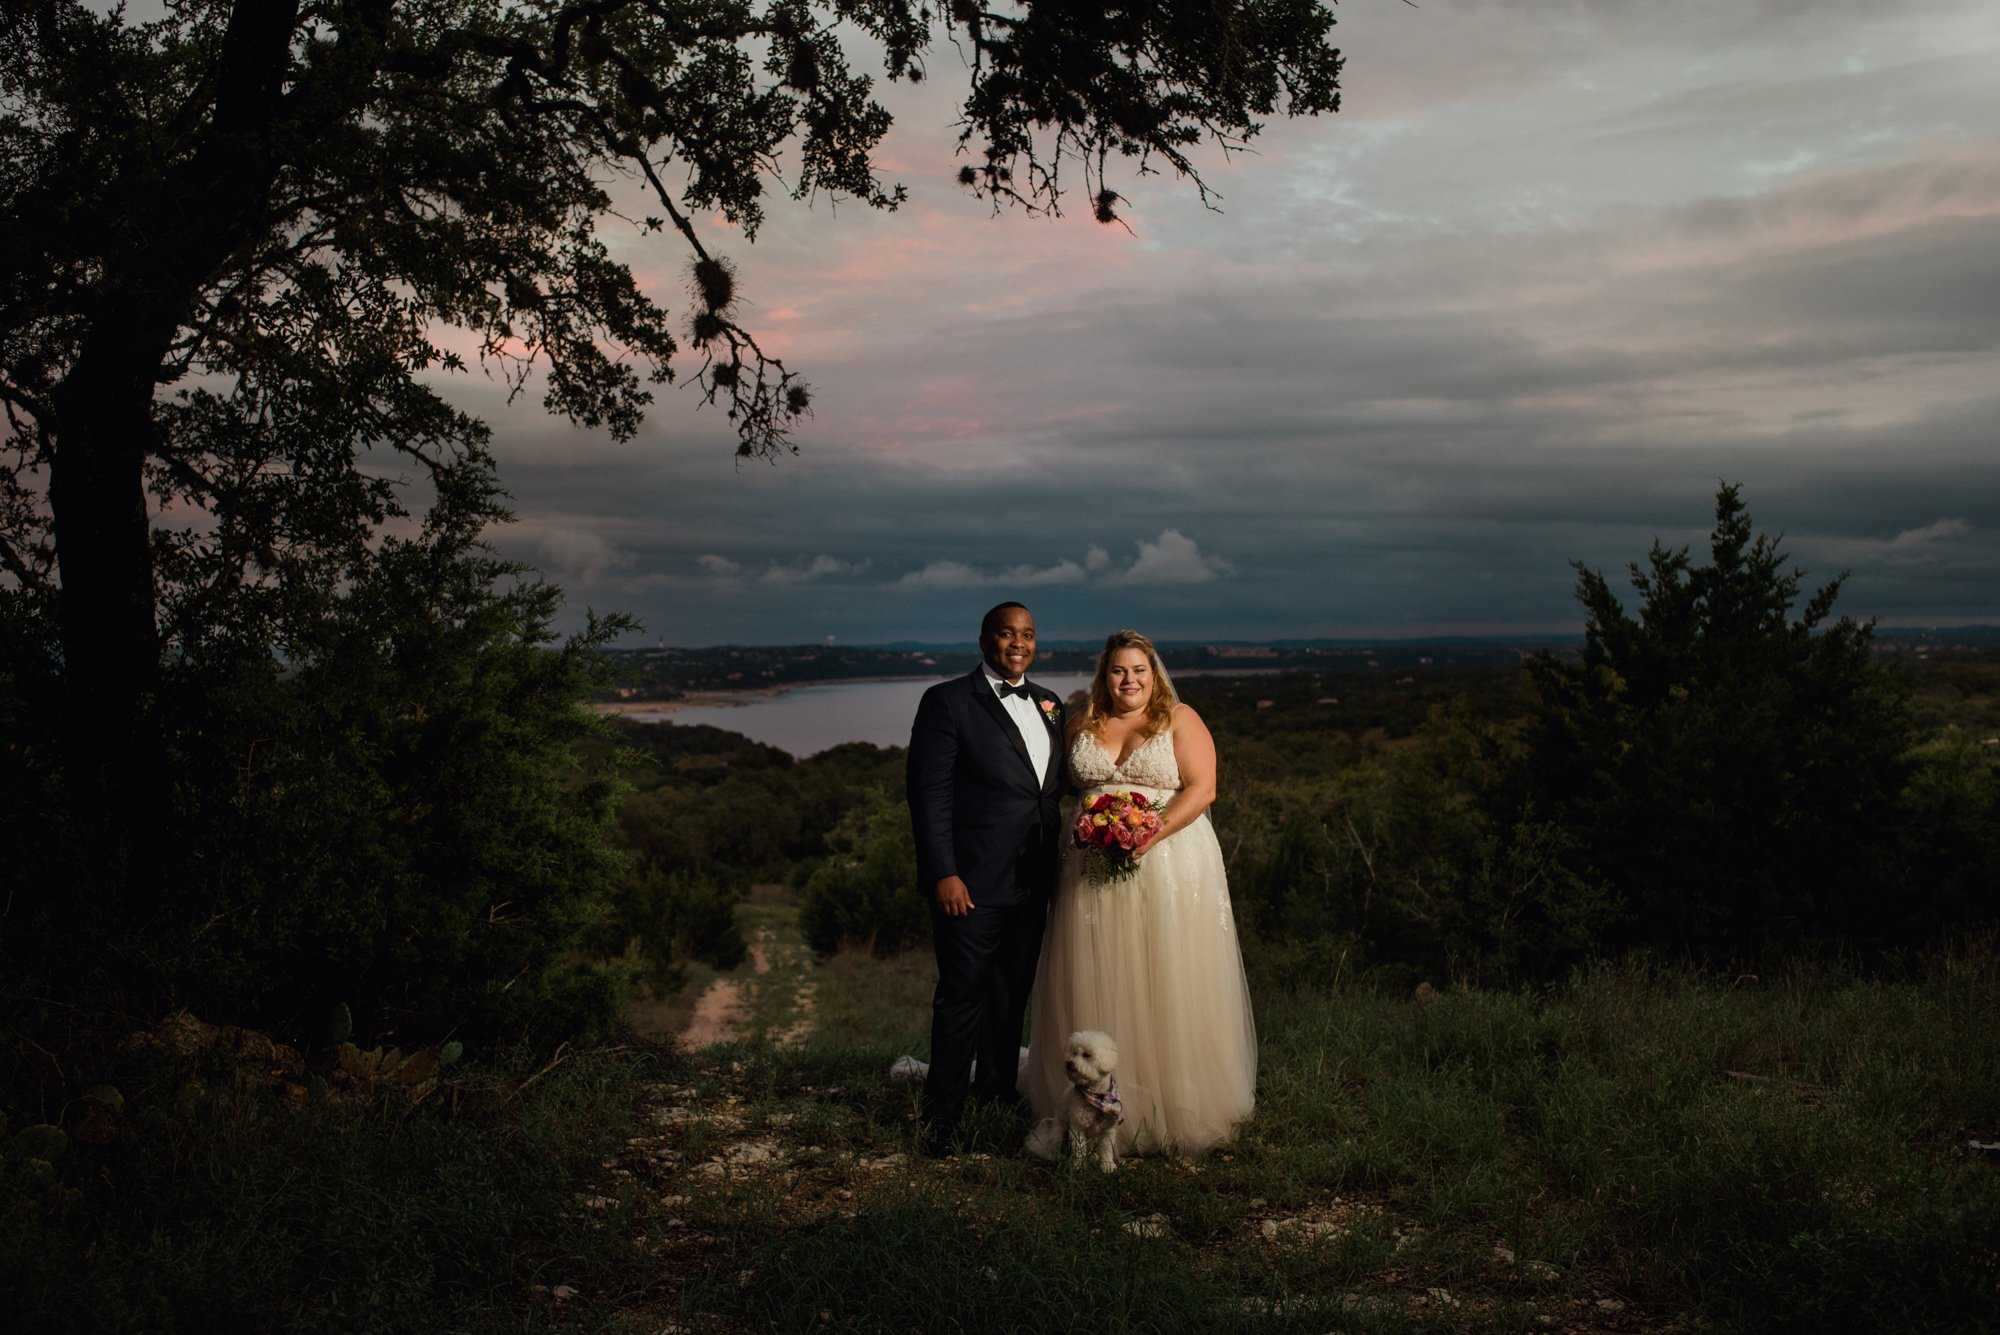 flash photography sunset portraits, killer sunset photos in austin, lago vista wedding,